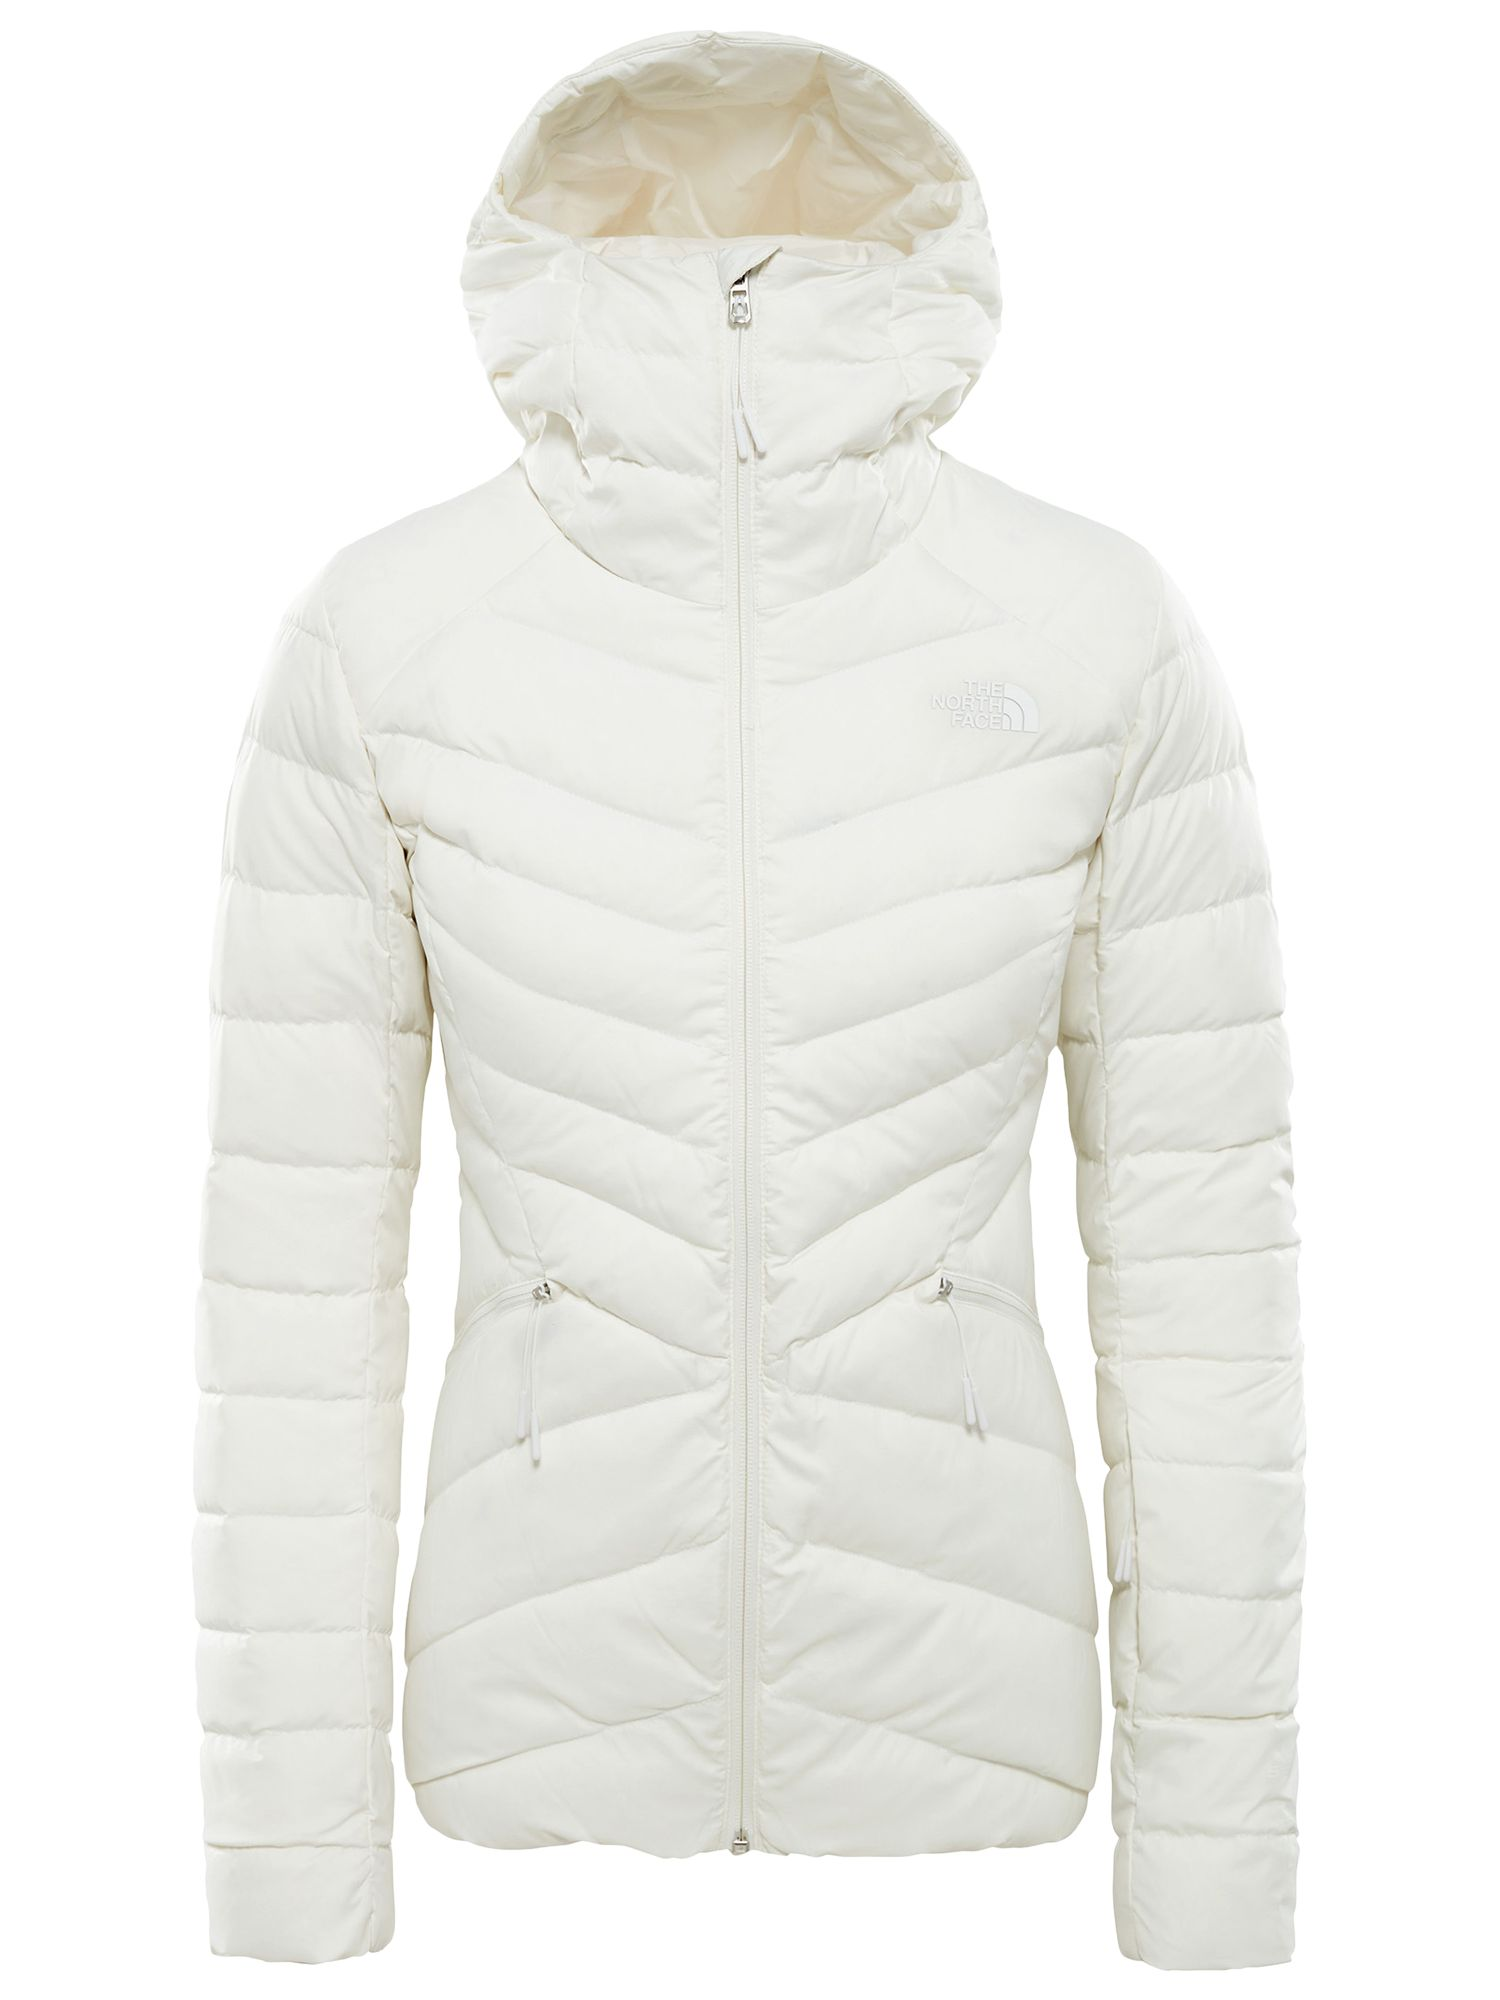 b07ea4c679729 The North Face Women's Moonlight Down Waterproof Ski Jacket, White at John  Lewis & Partners